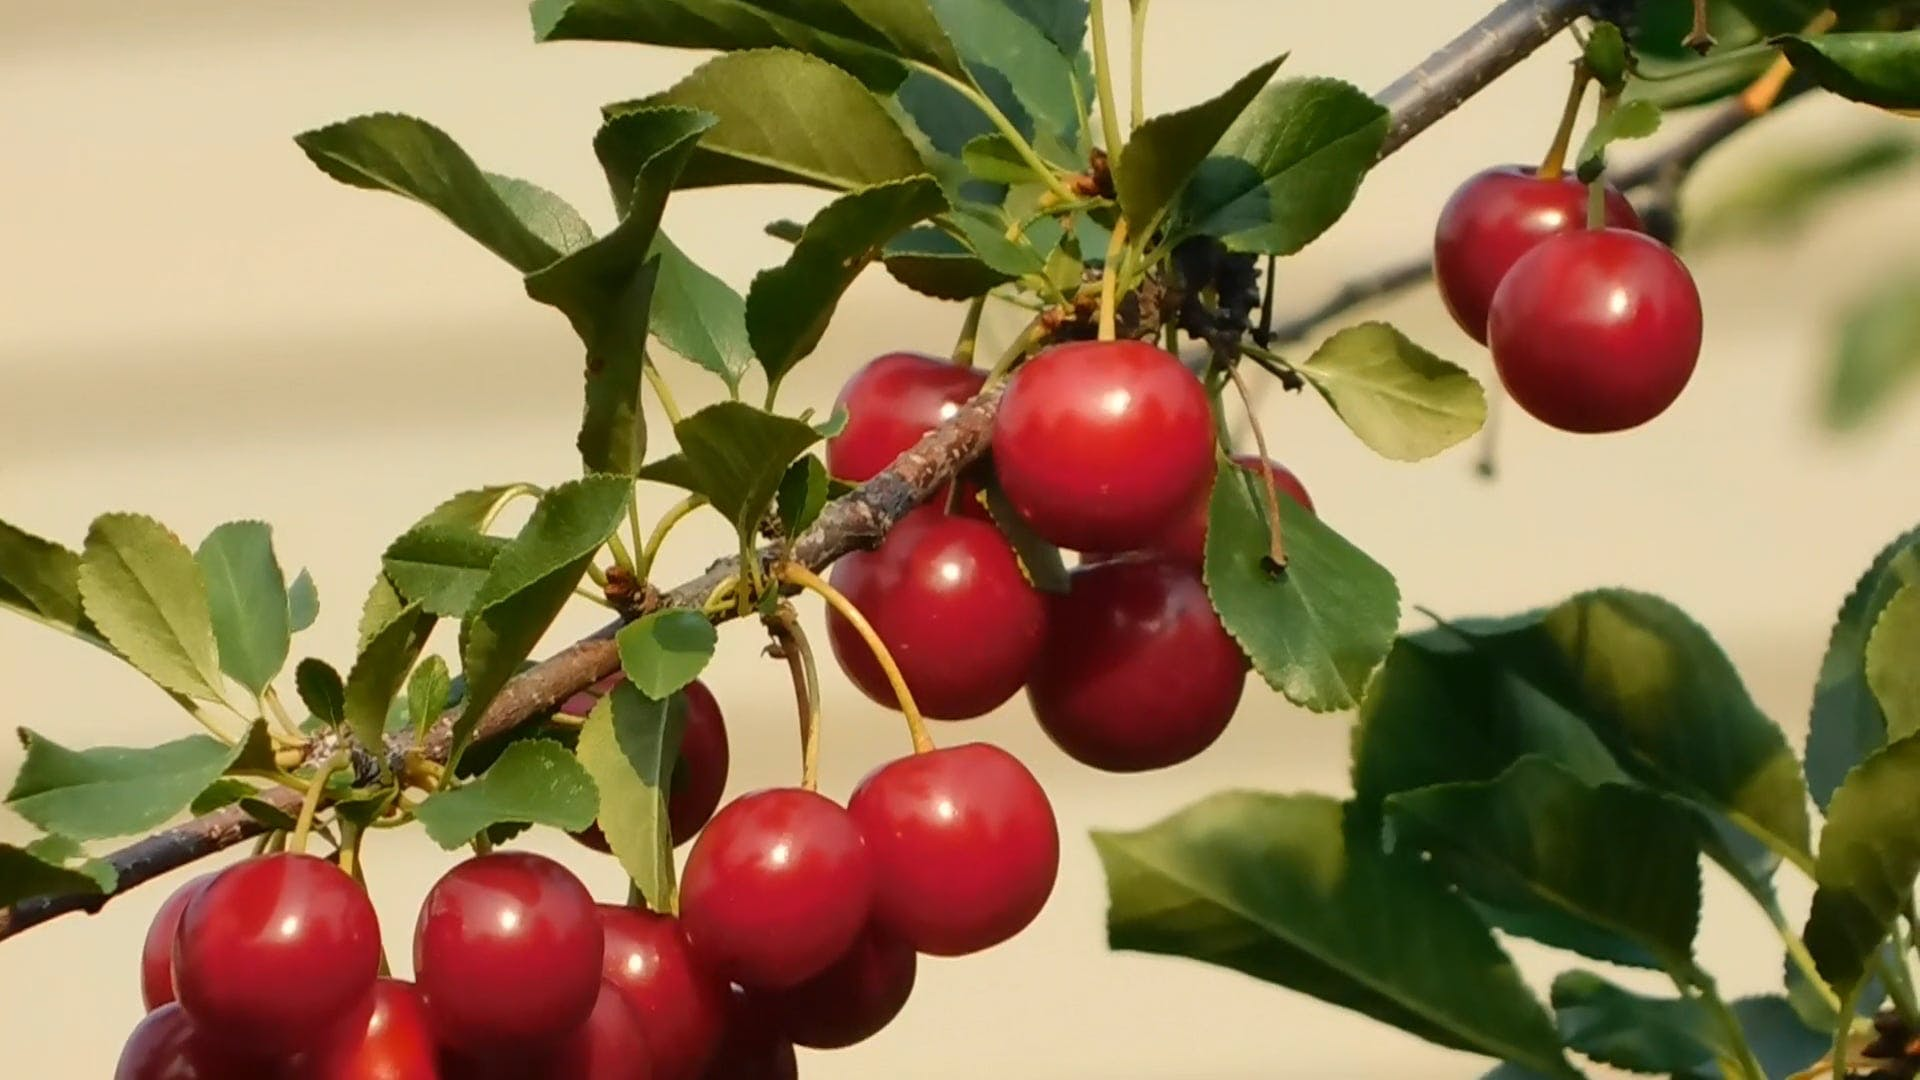 Delicious Cherries on the Tree